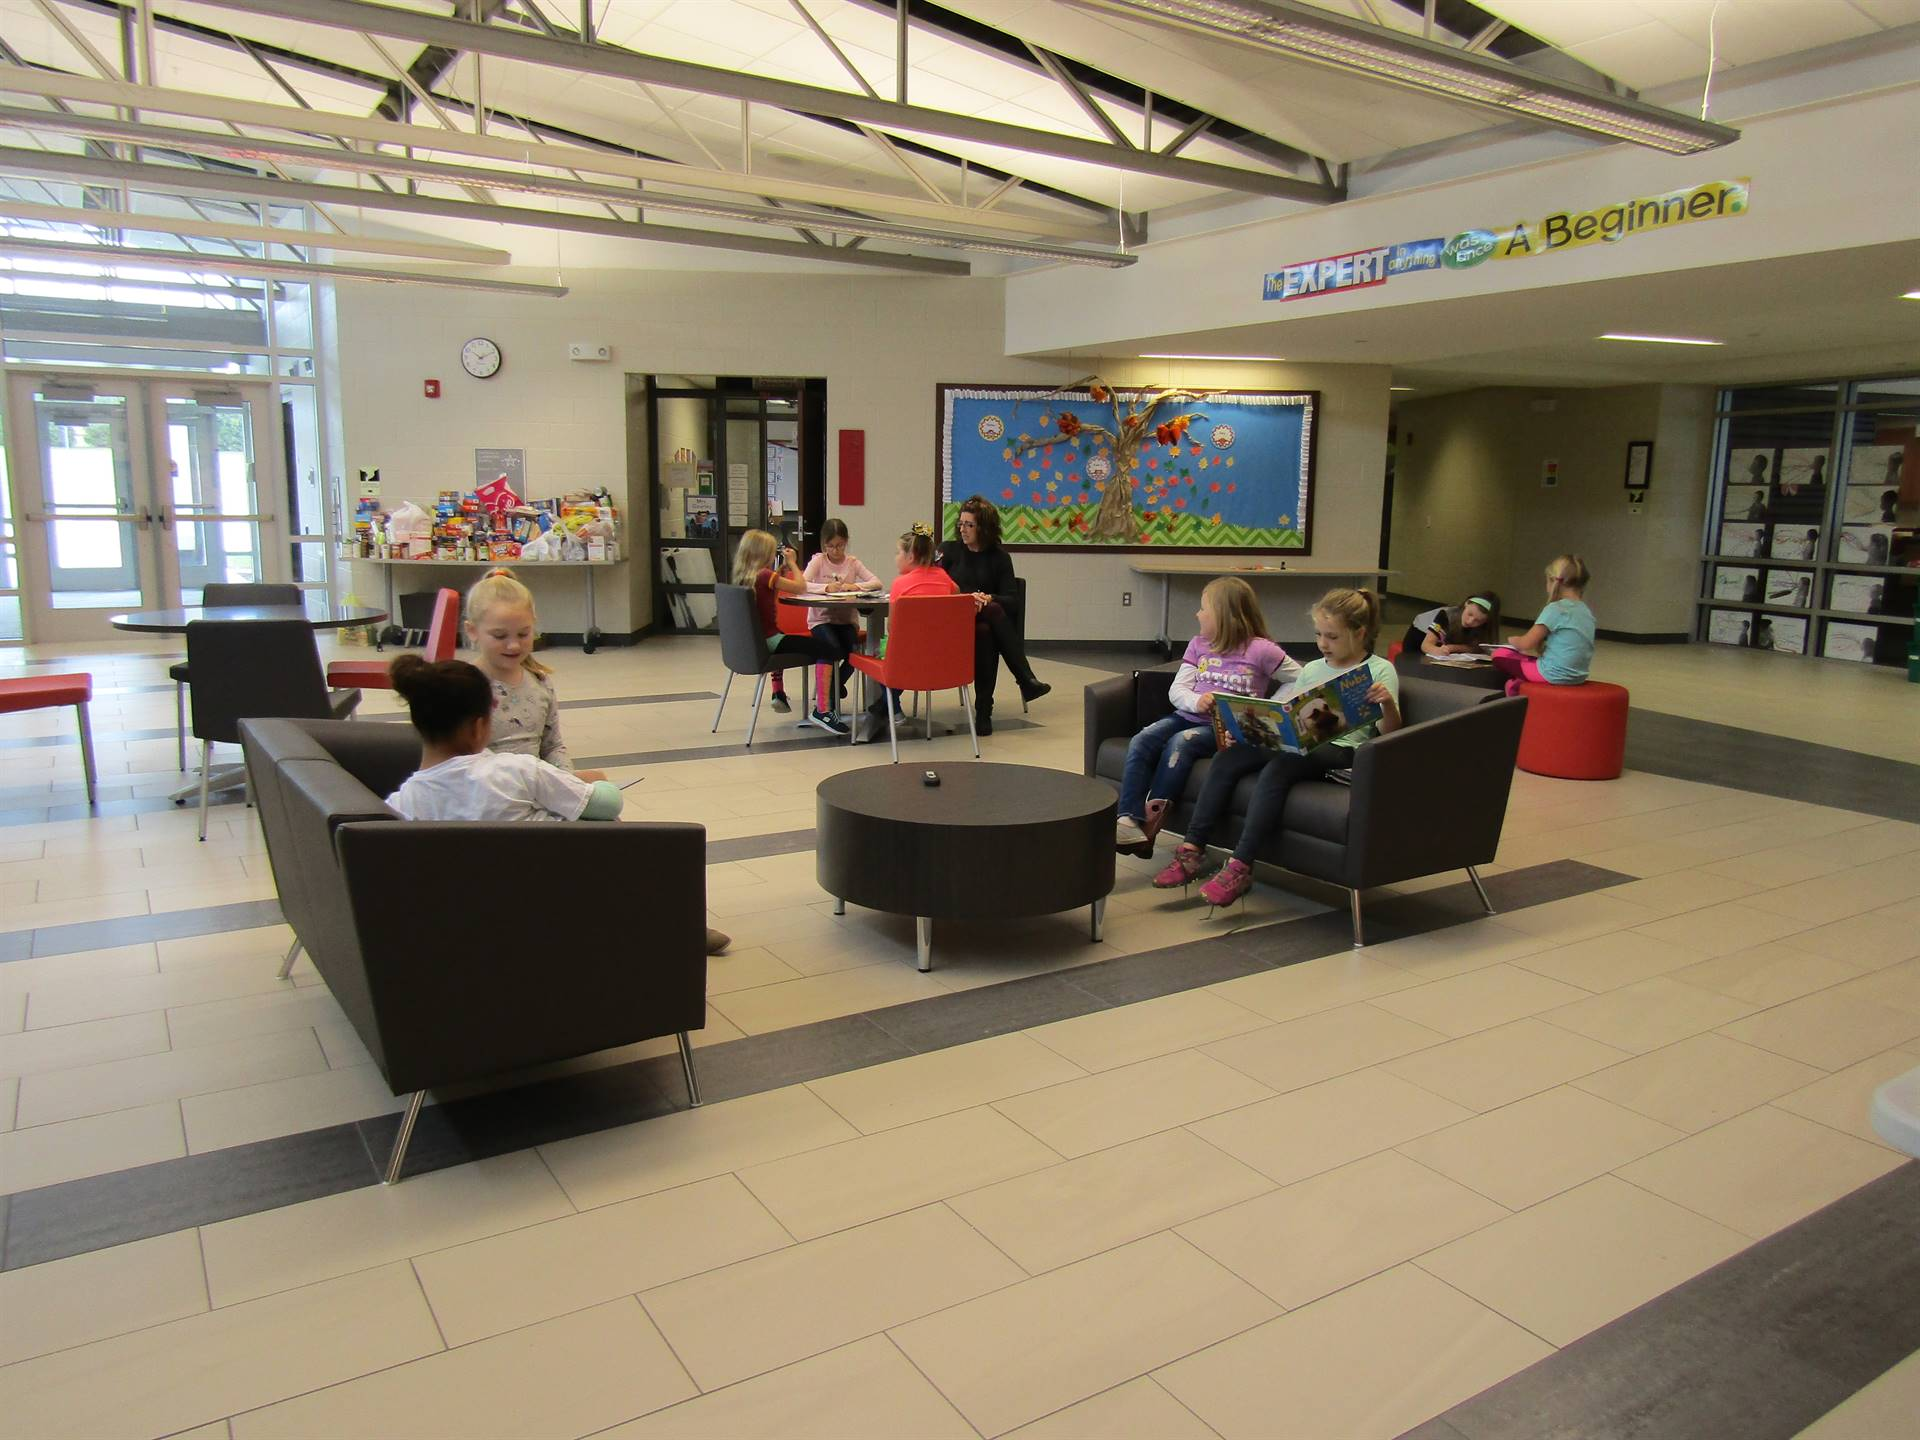 Our new lobby furniture is being used by many students.